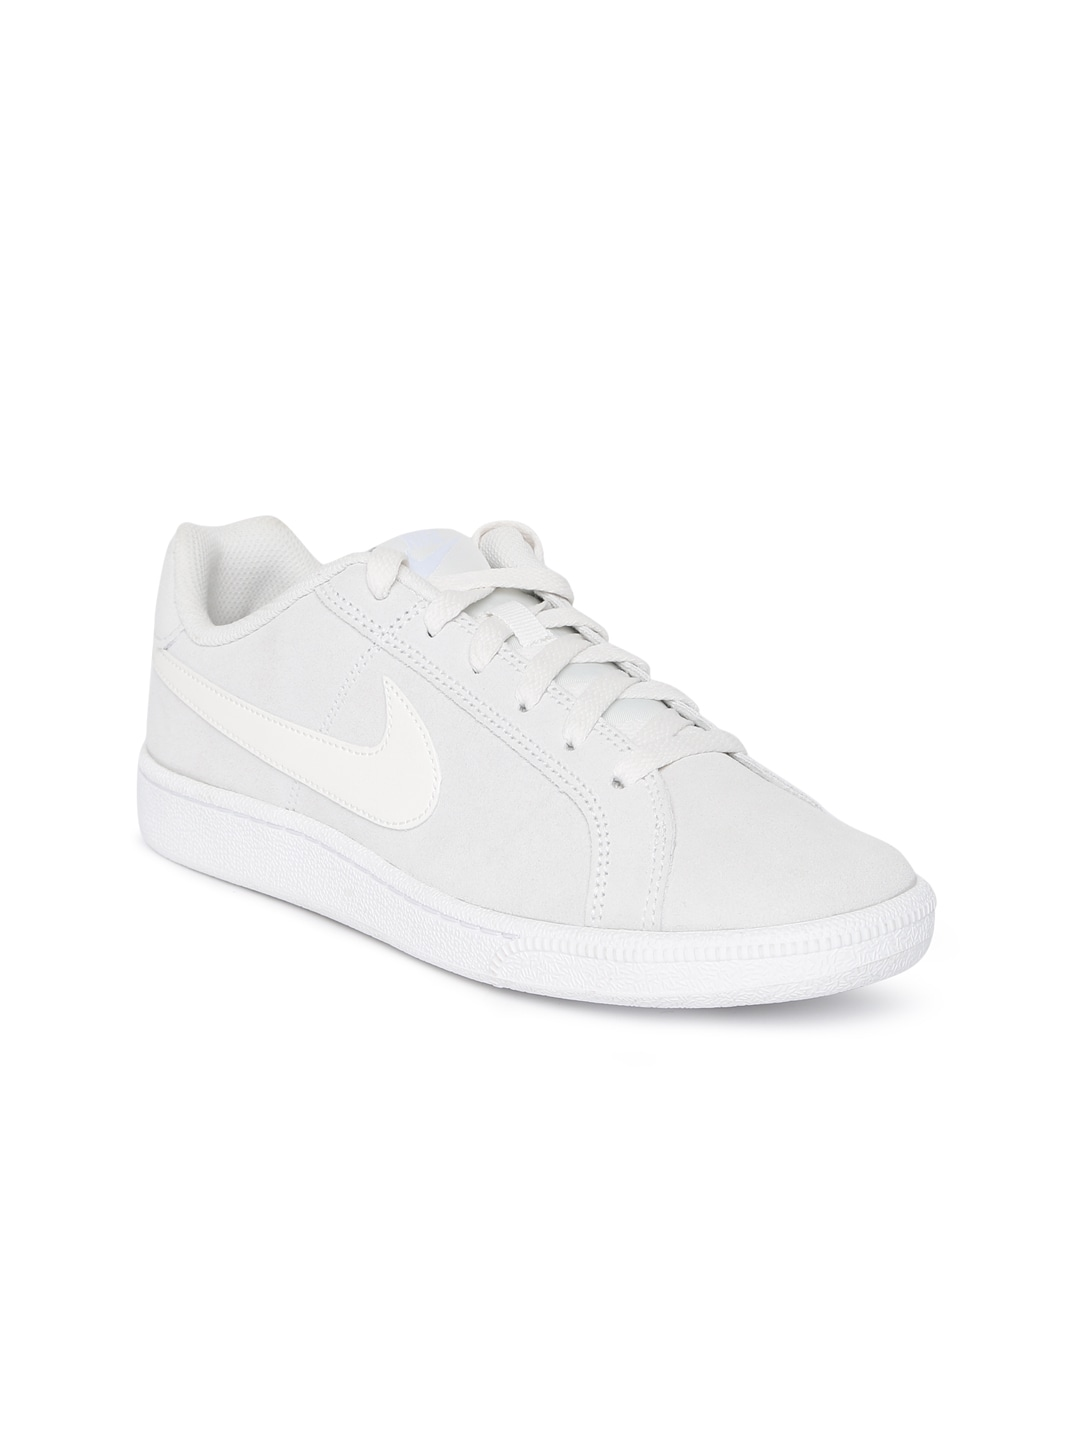 3299aec65 Nike - Shop for Nike Apparels Online in India